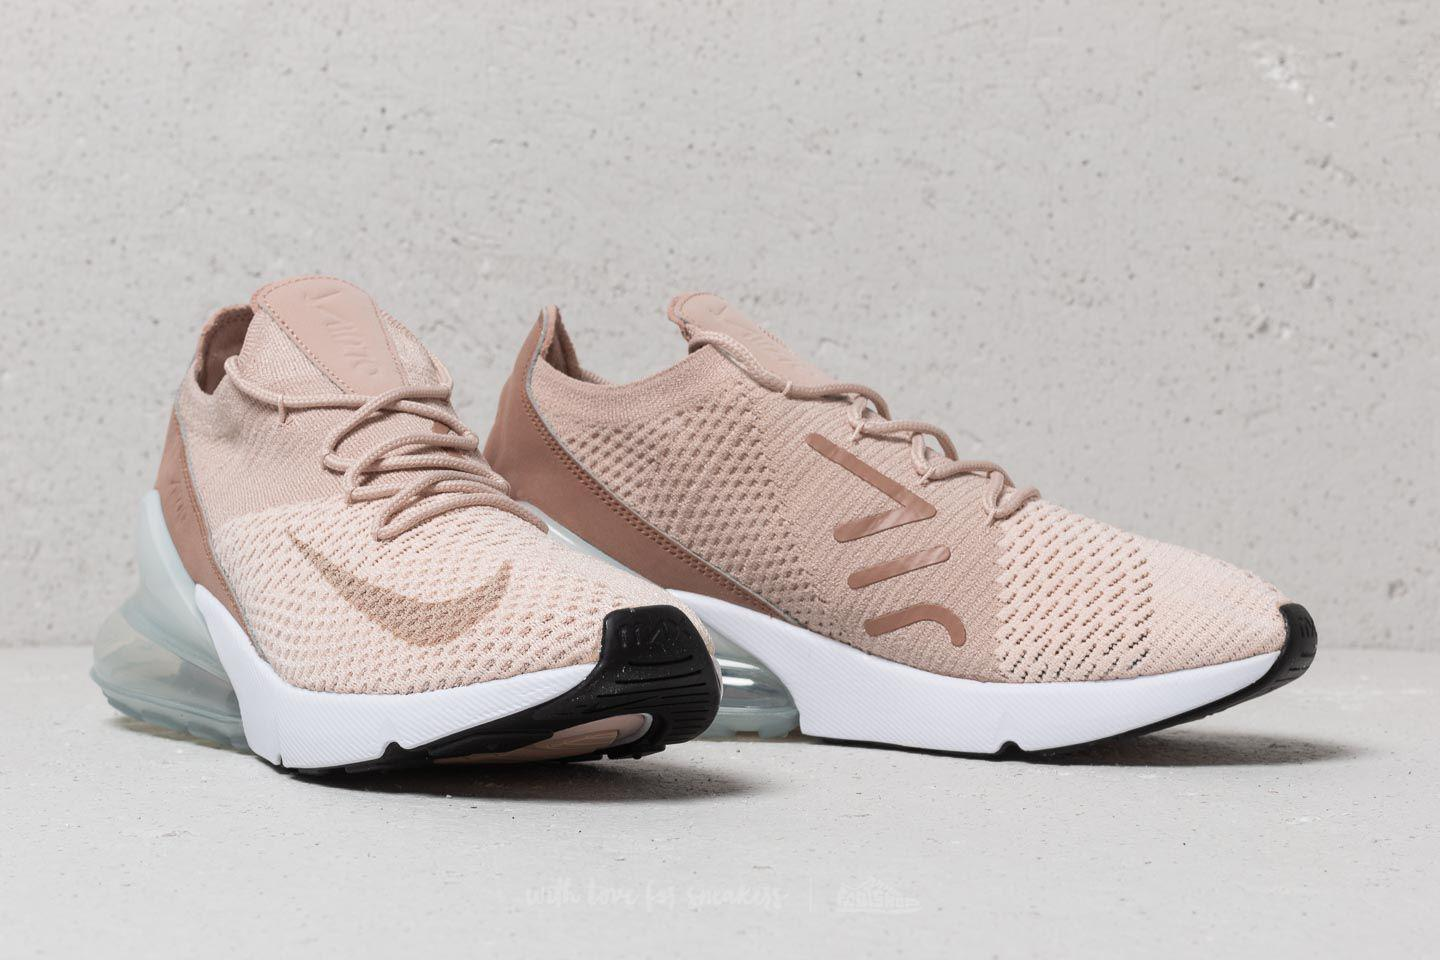 942b9b57c Nike Wmns Air Max 270 Flyknit Guava Ice/ Particle Beige - Lyst